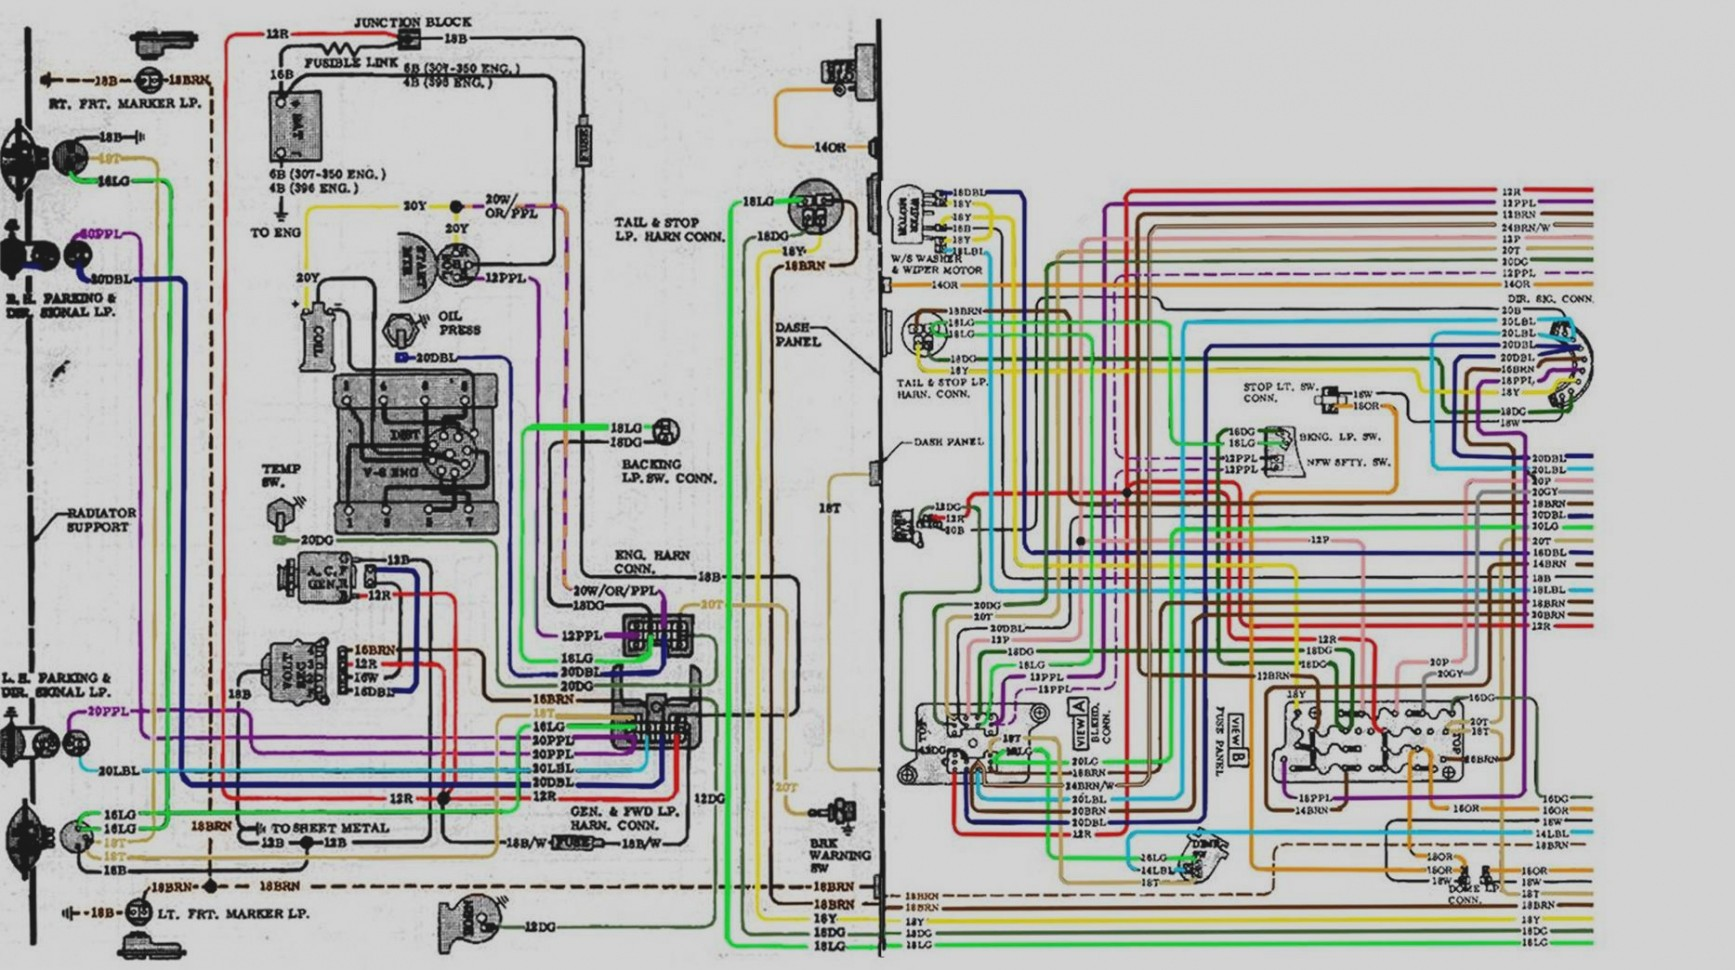 strat wiring diagram 1968 enthusiast wiring diagrams u2022 rh rasalibre co 2006 International 4300 Truck Diagram Diagram of 2000 International 4900 Truck